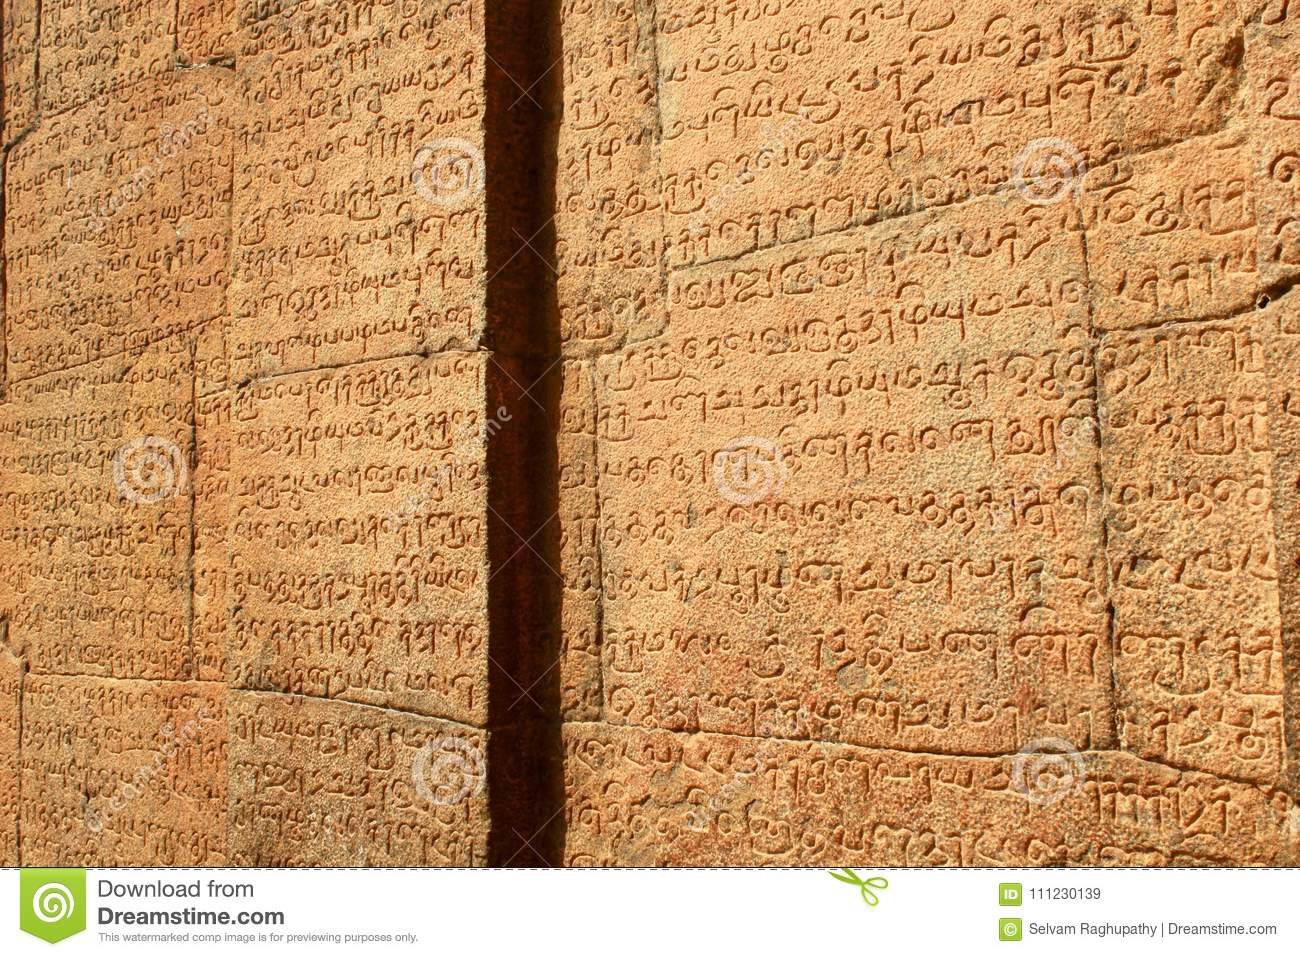 Tamil and Sanskrit inscriptions from the 11th century.